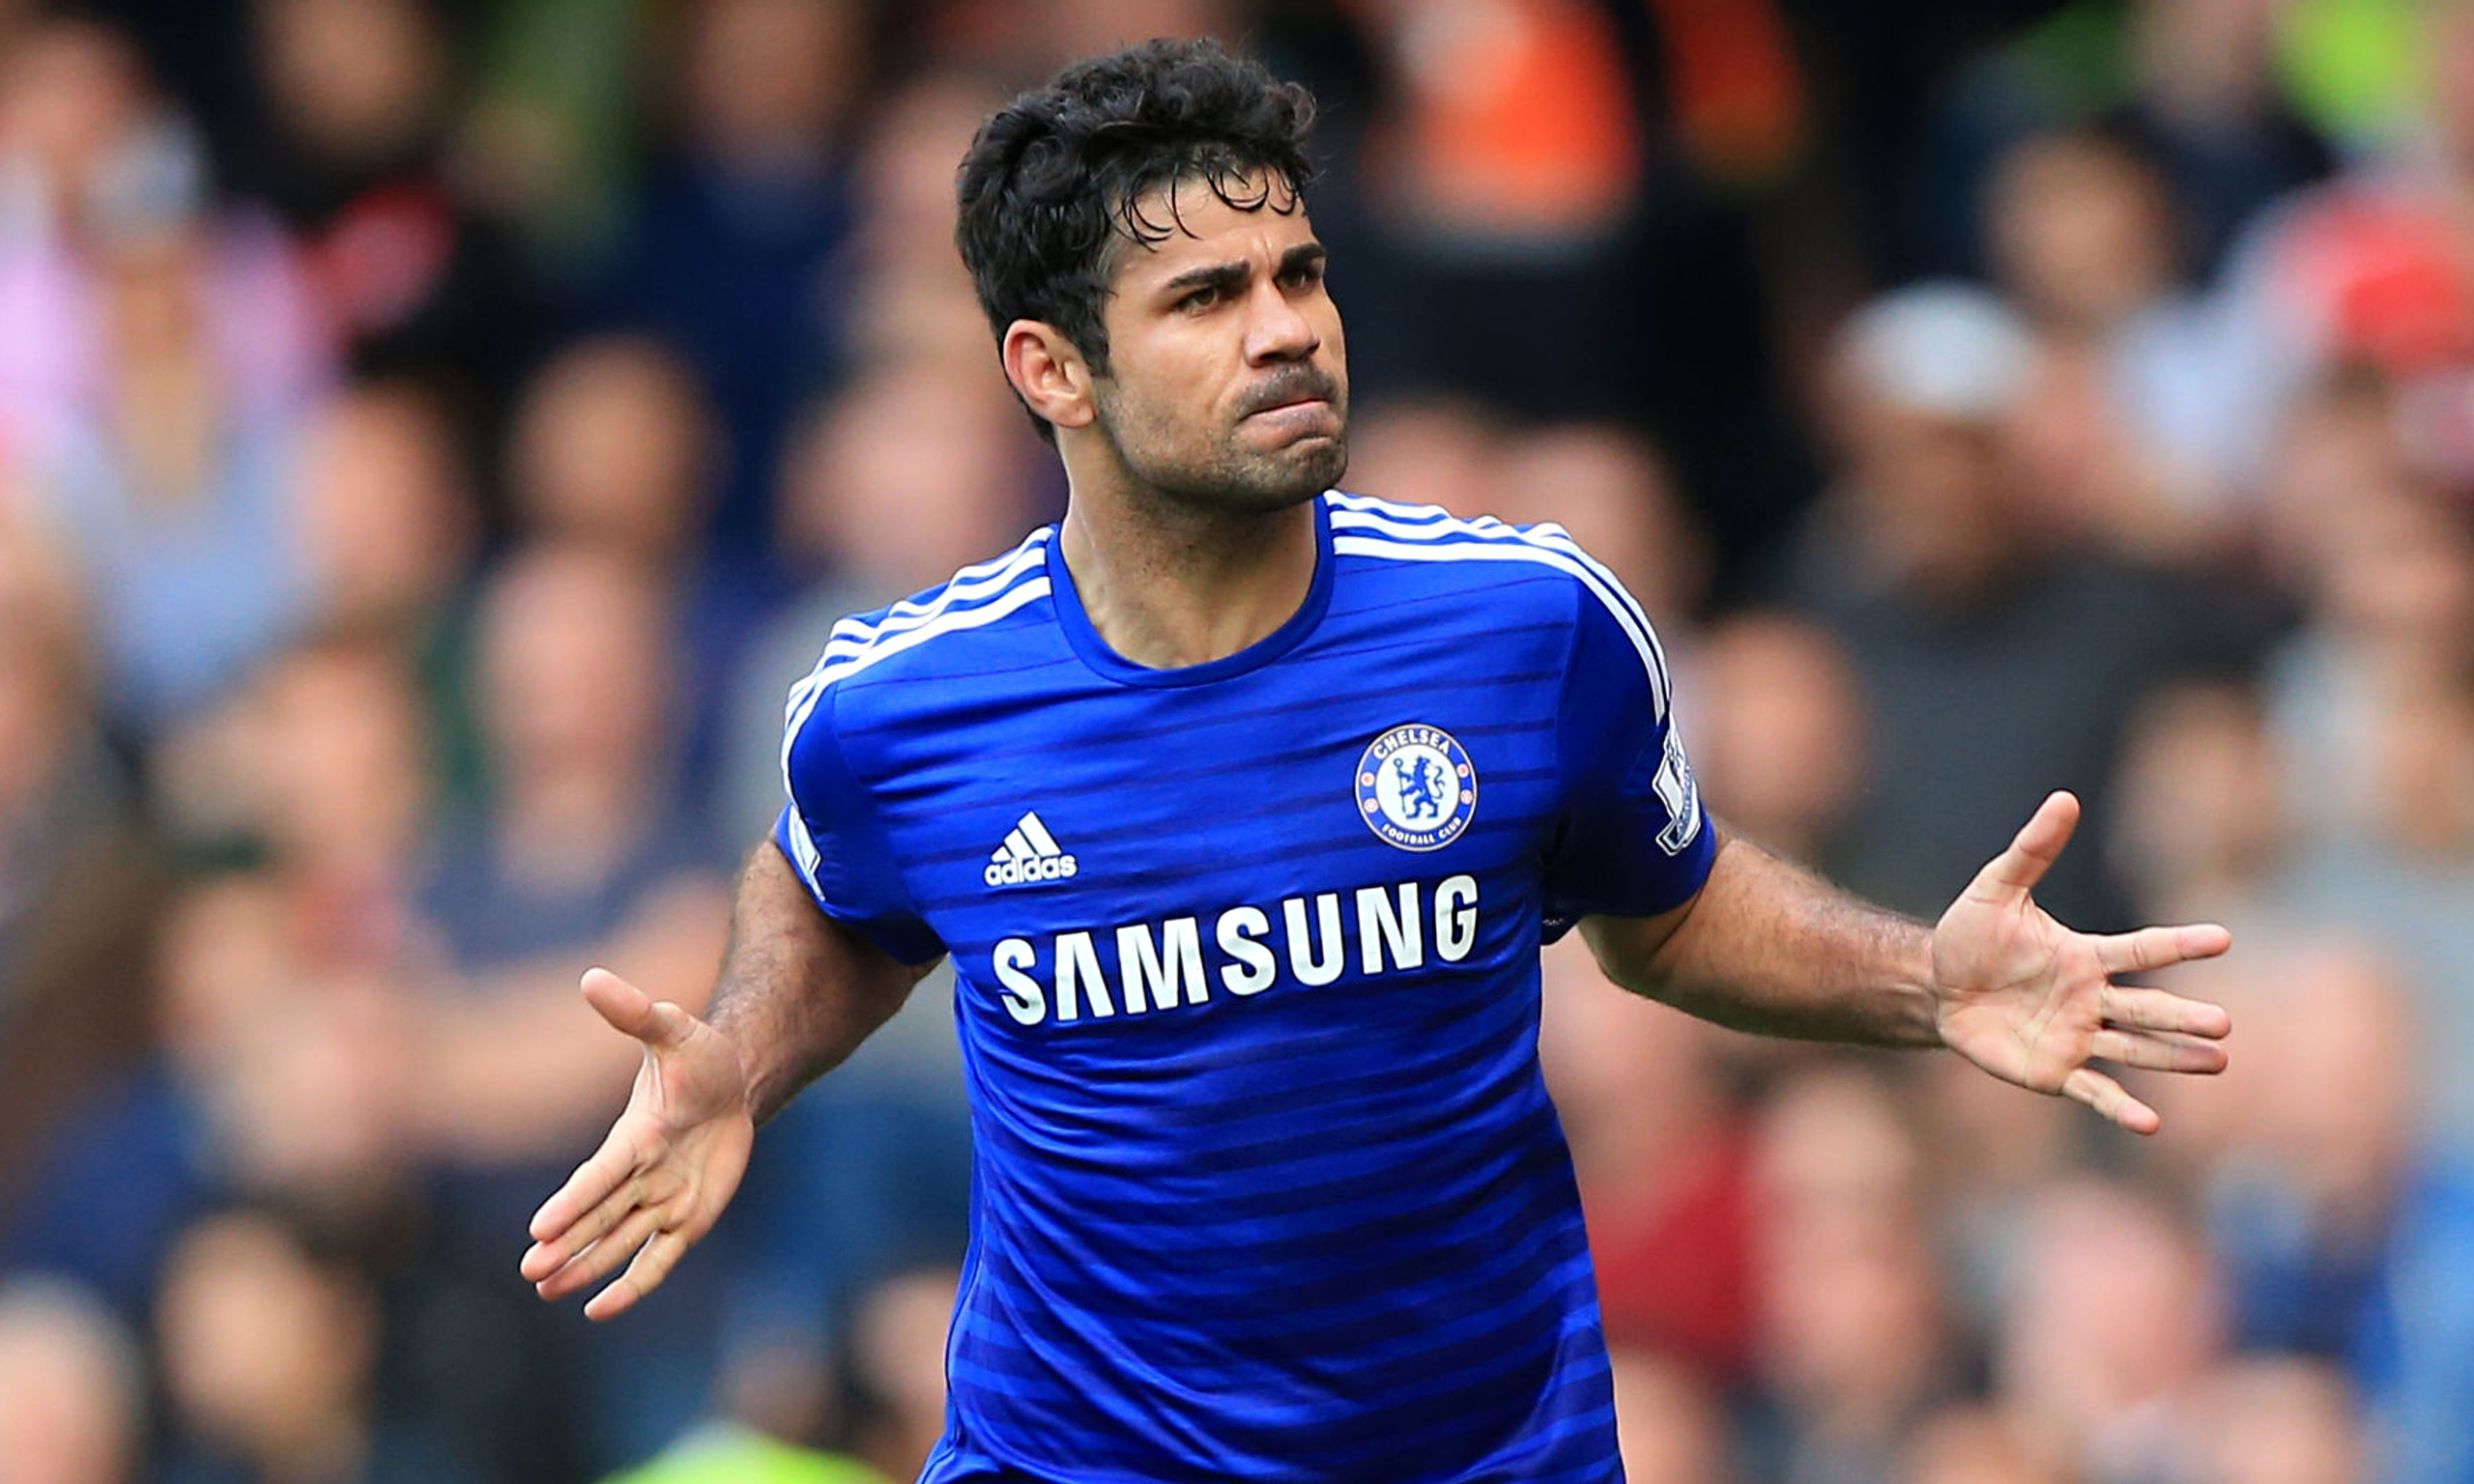 Diego Costa earned a 12 million dollar salary, leaving the net worth at 15 million in 2017